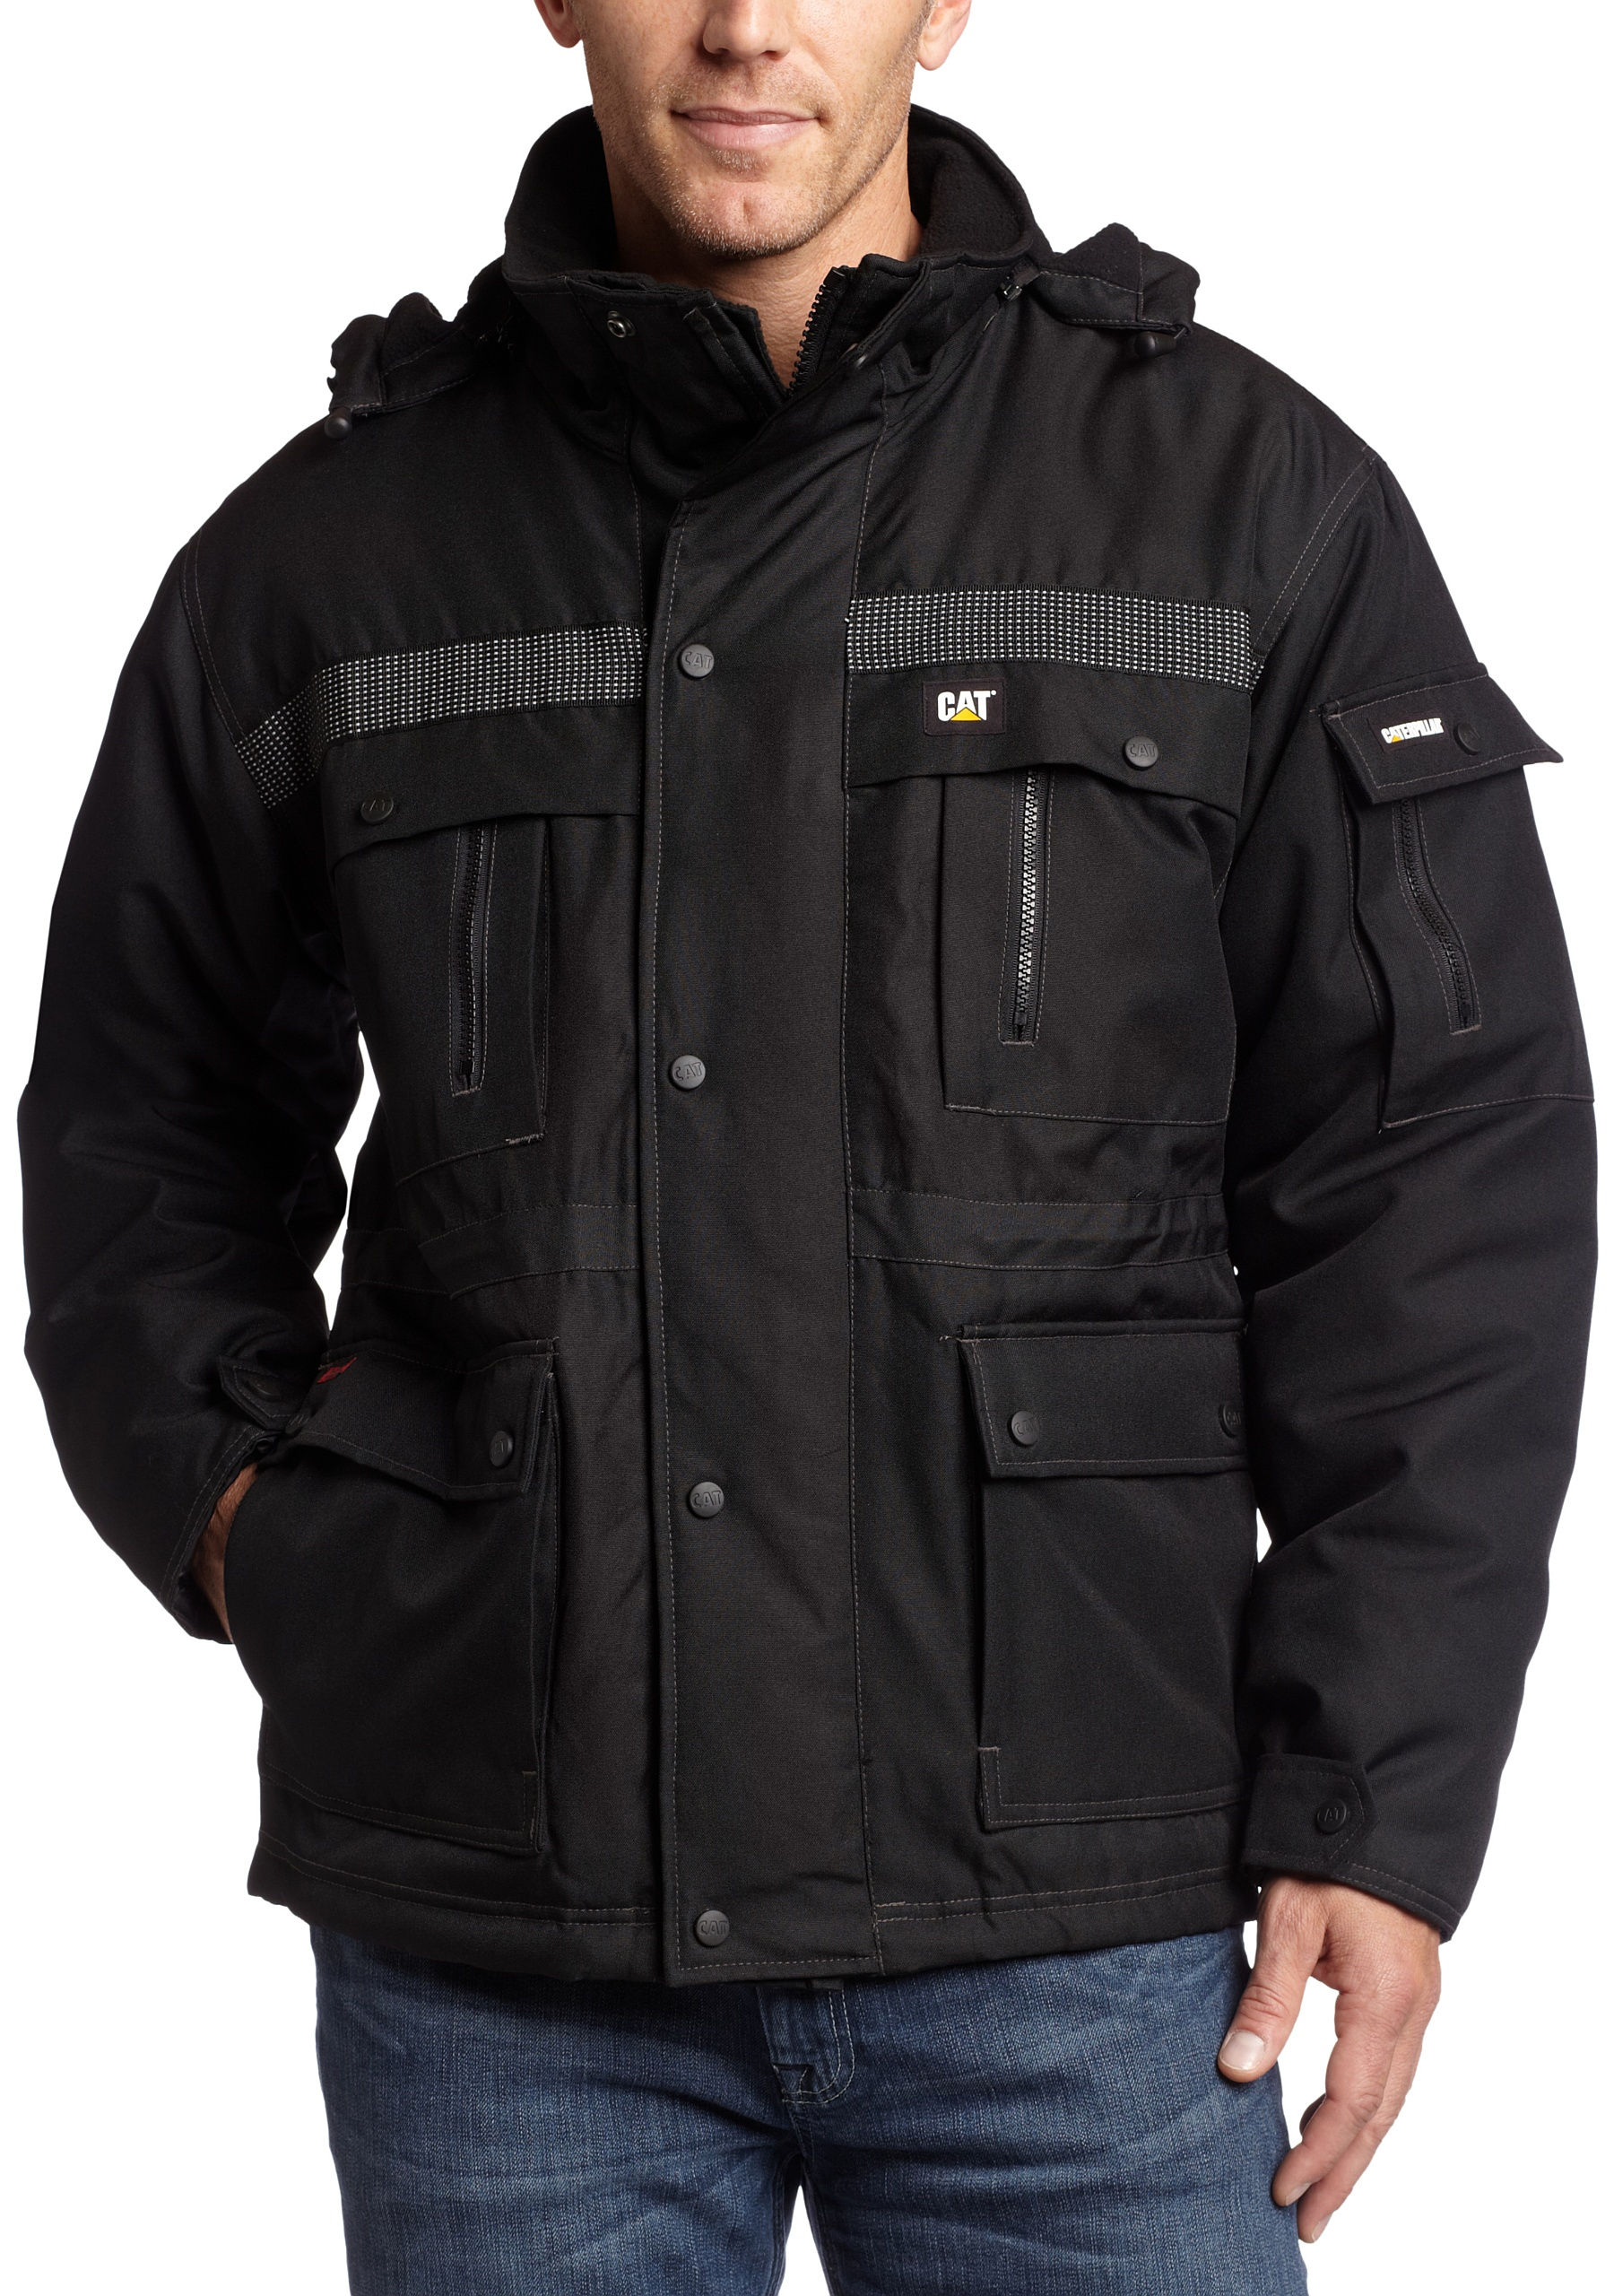 Caterpillar Men's Heavy Insulated Parka Coat, Black, Large by Caterpillar